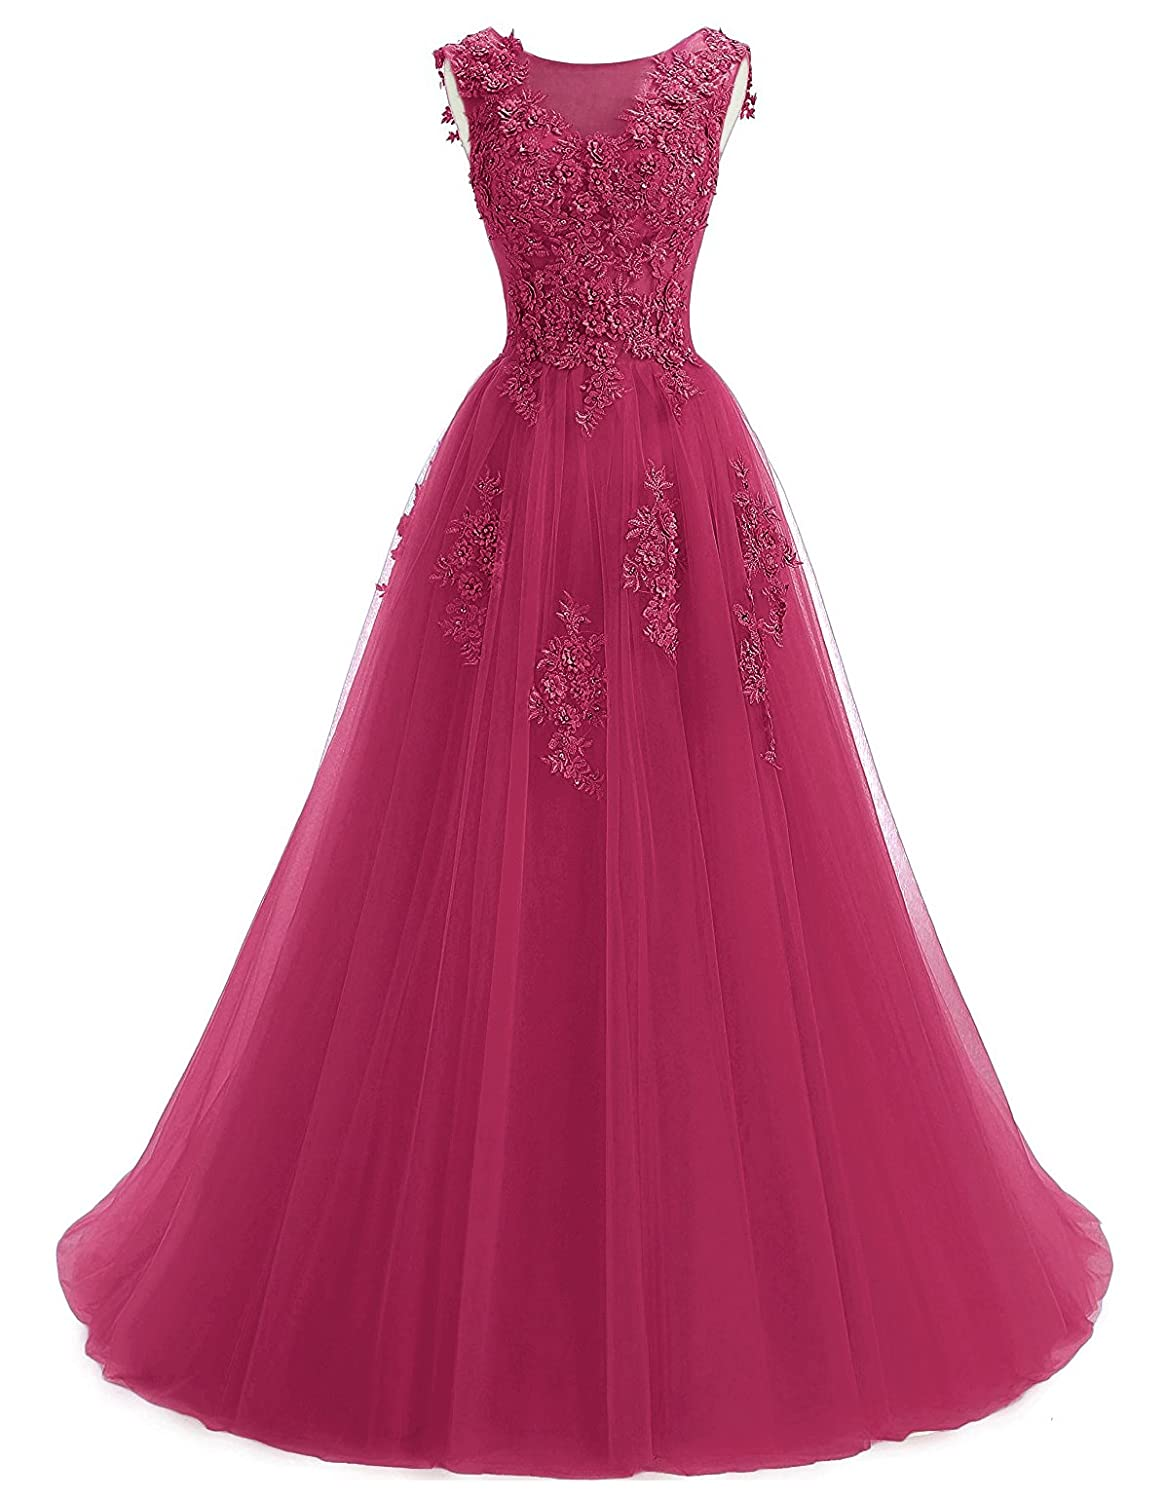 Fuchsia Annxpink Women's Long Sheer Scoop Neck Beaded Pearls Flowers Tulle ALine Prom Gown Formal Evening Dress